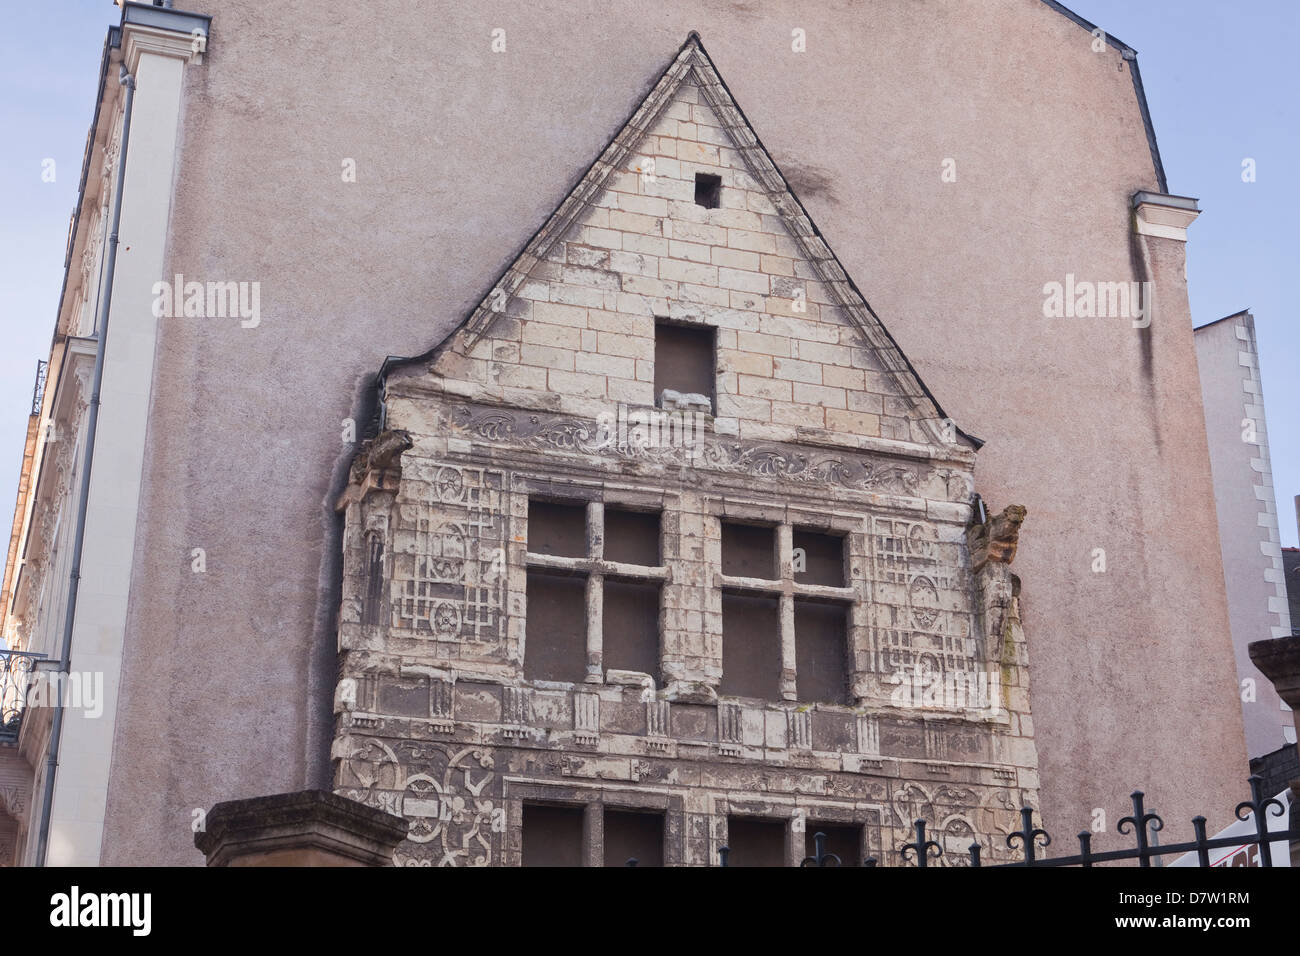 Part of the Logis Pince in Angers, Maine-et-Loire, France - Stock Image